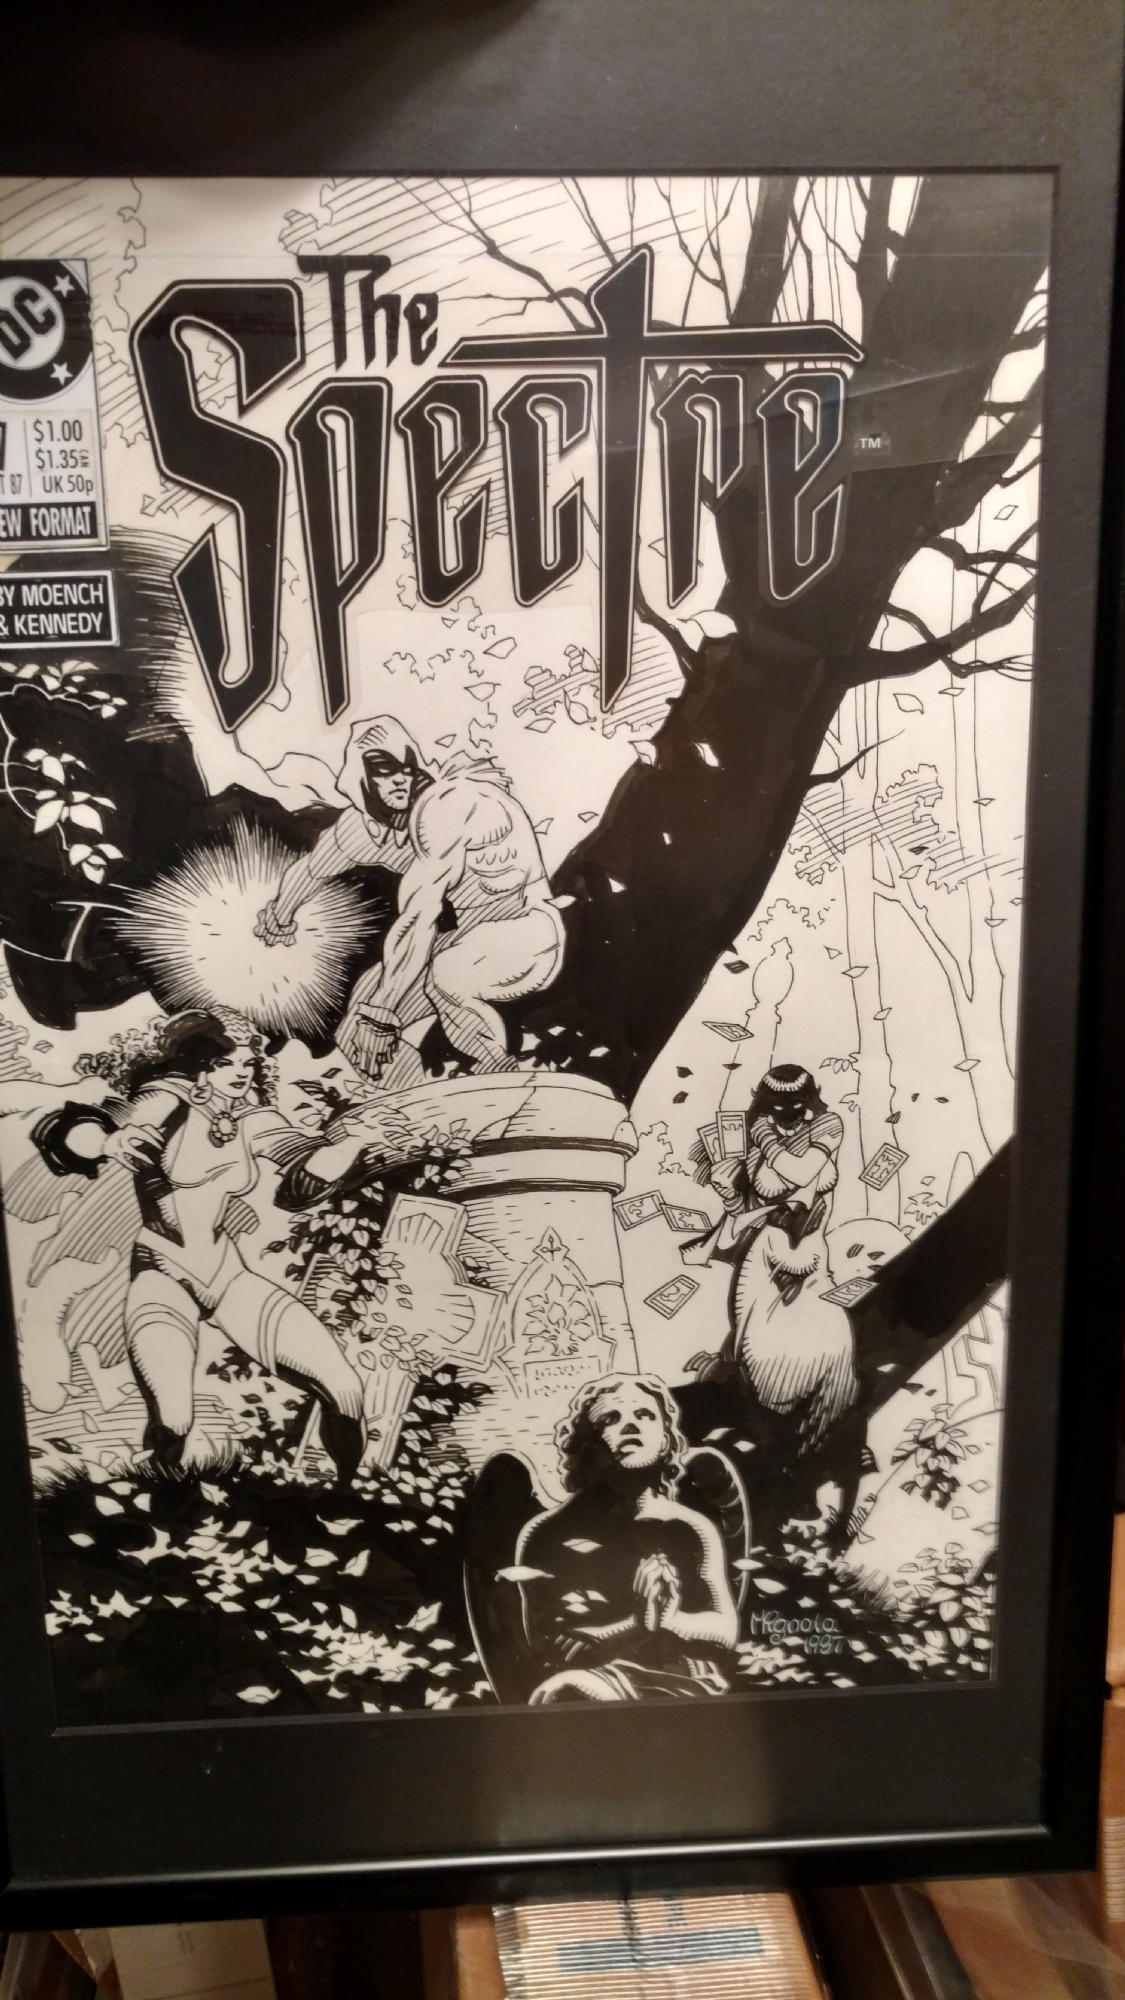 The Spectre #7 Cover by Mike Mignola! Comic Art